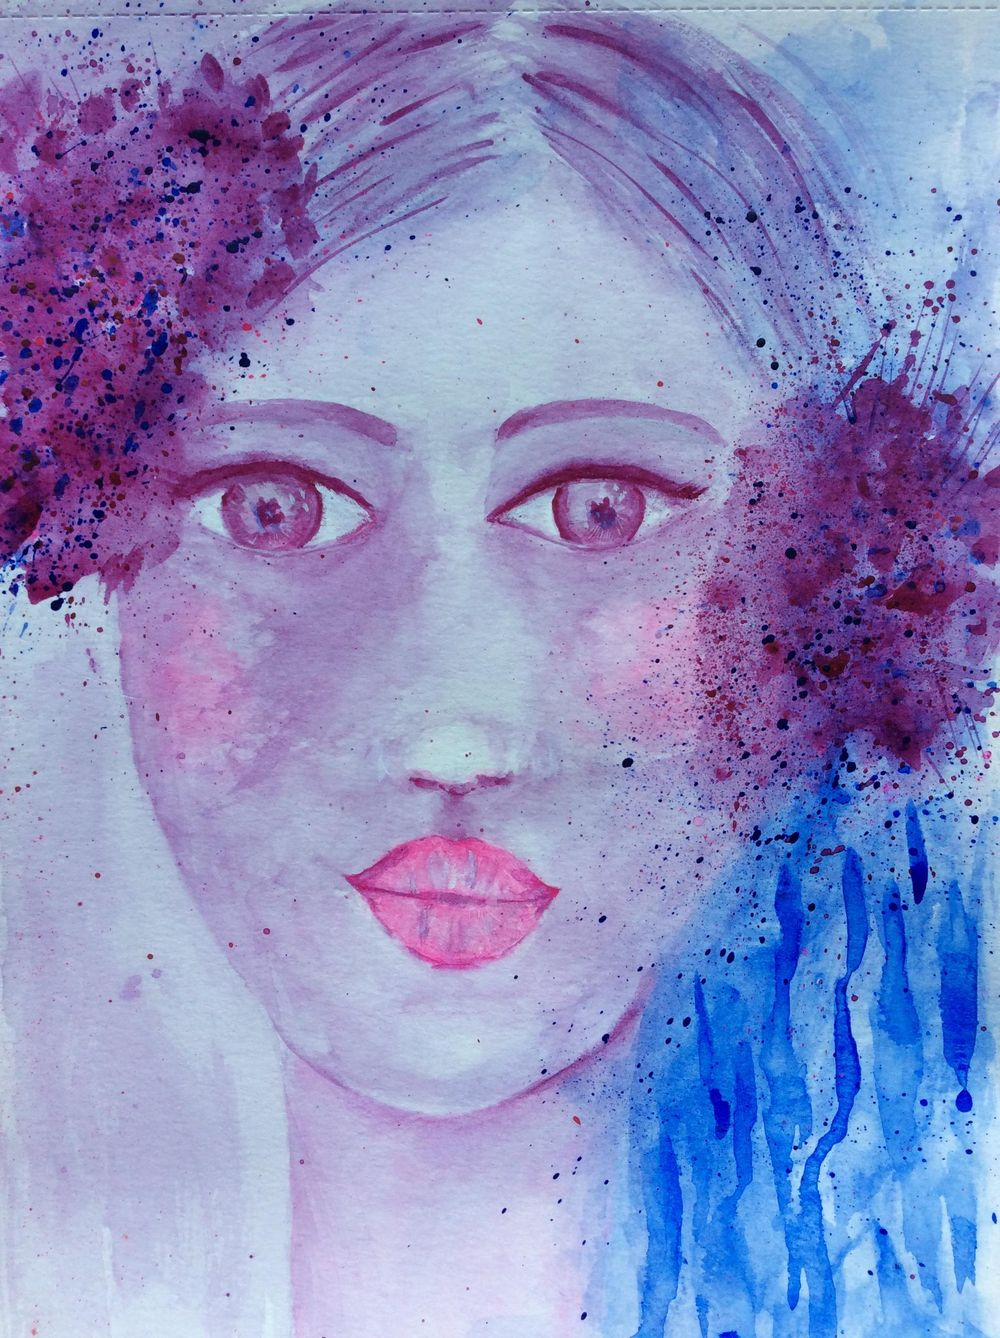 Whimsical Face in watercolour - image 1 - student project